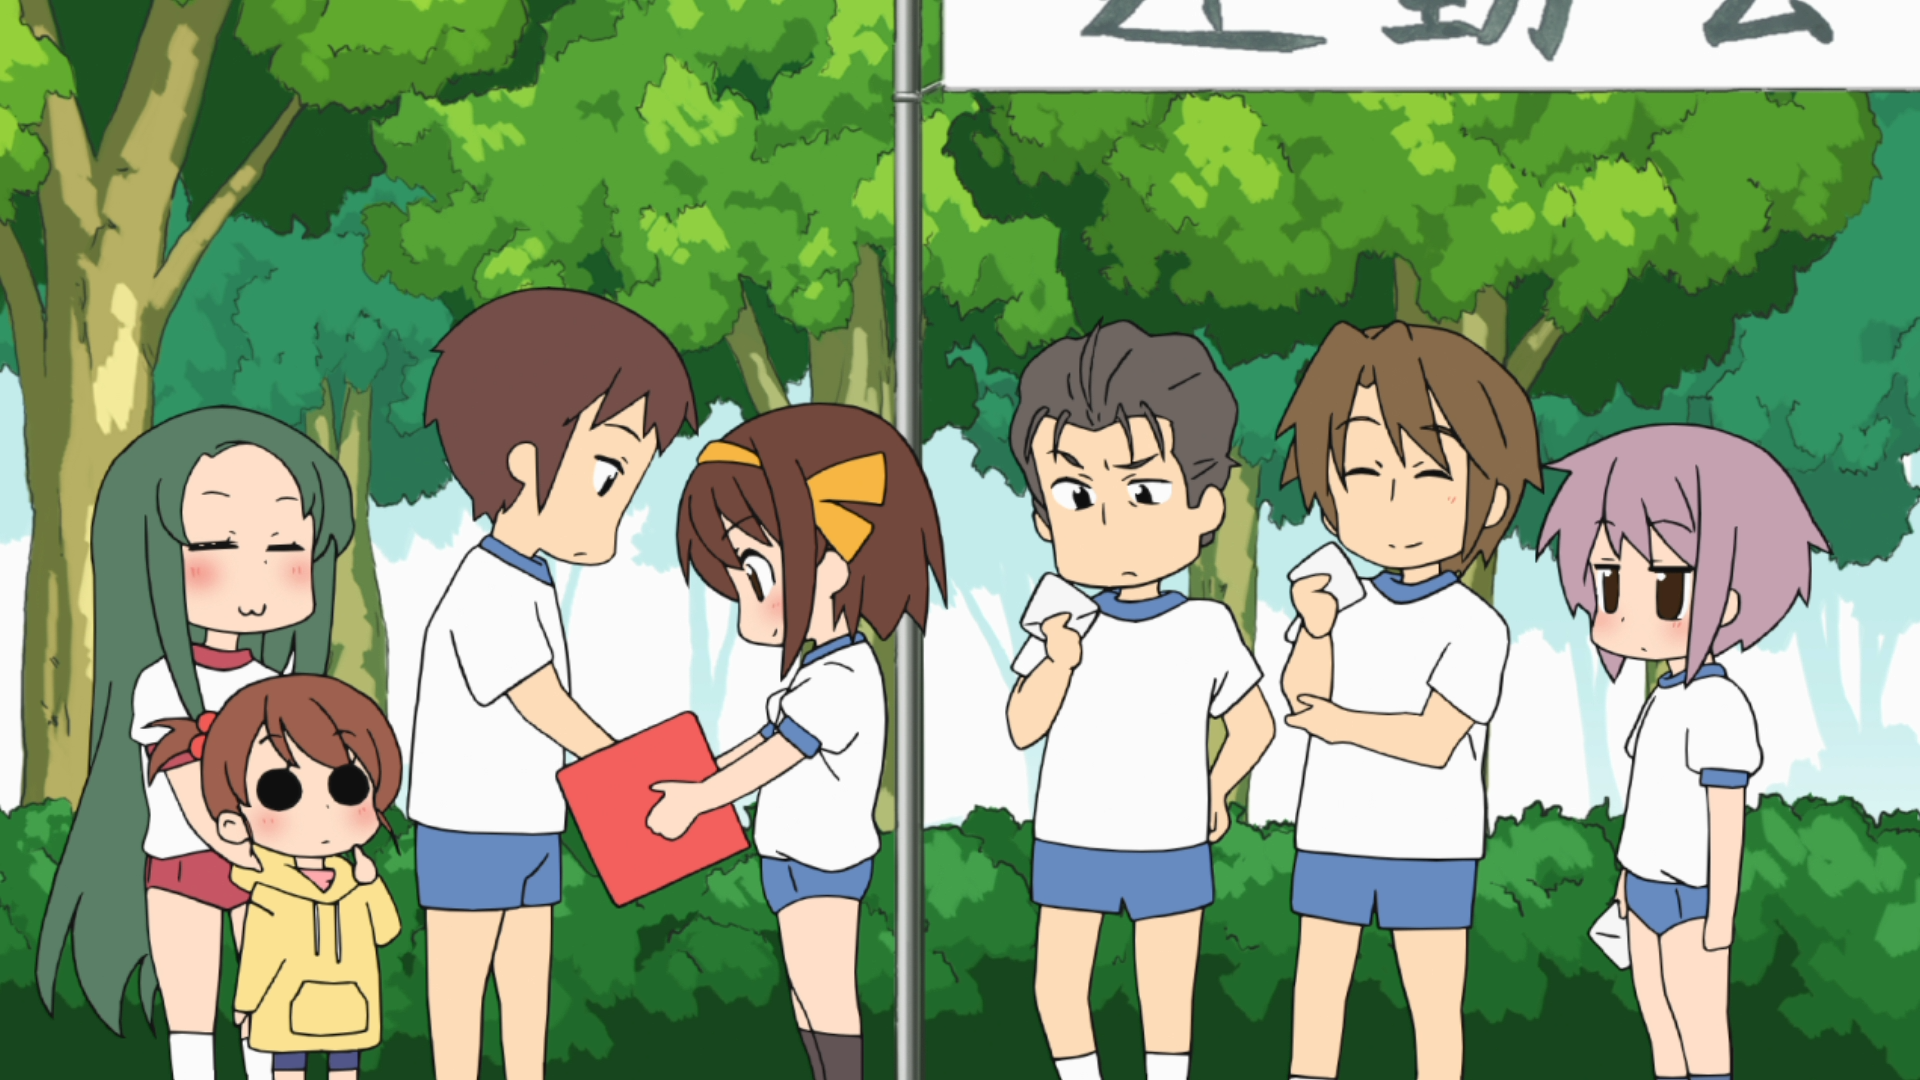 Download image Images Haruhi Suzumiya Image Anoword Search Video Blog ...